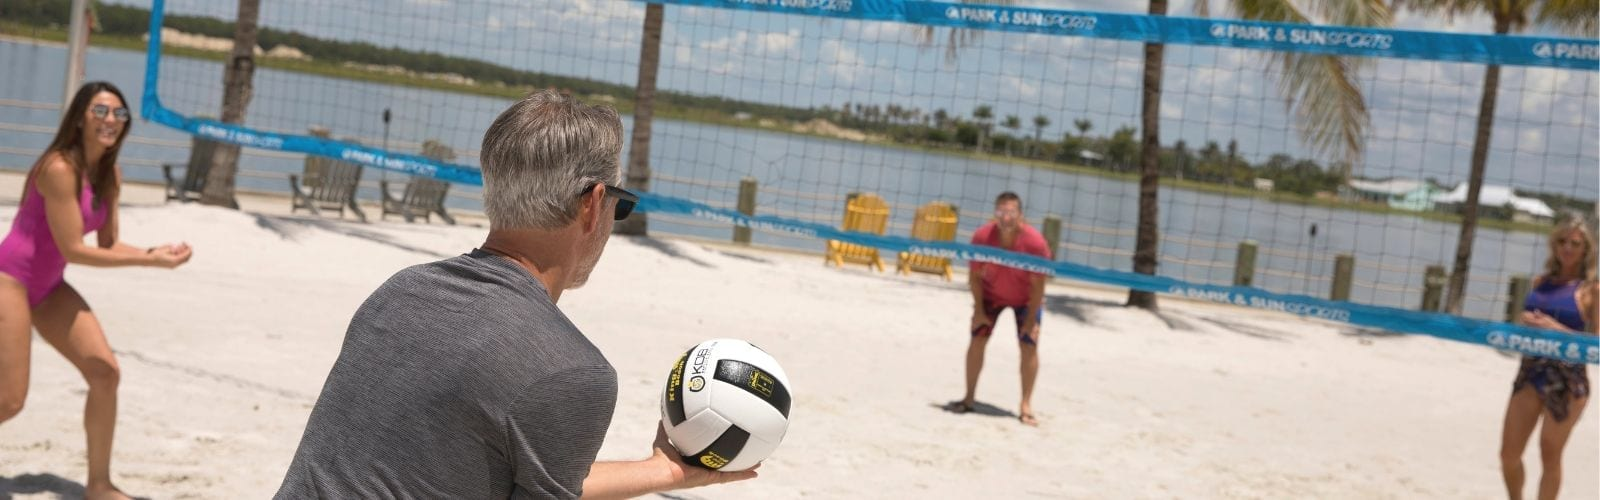 People playing volleyball outside at Naples Reserve